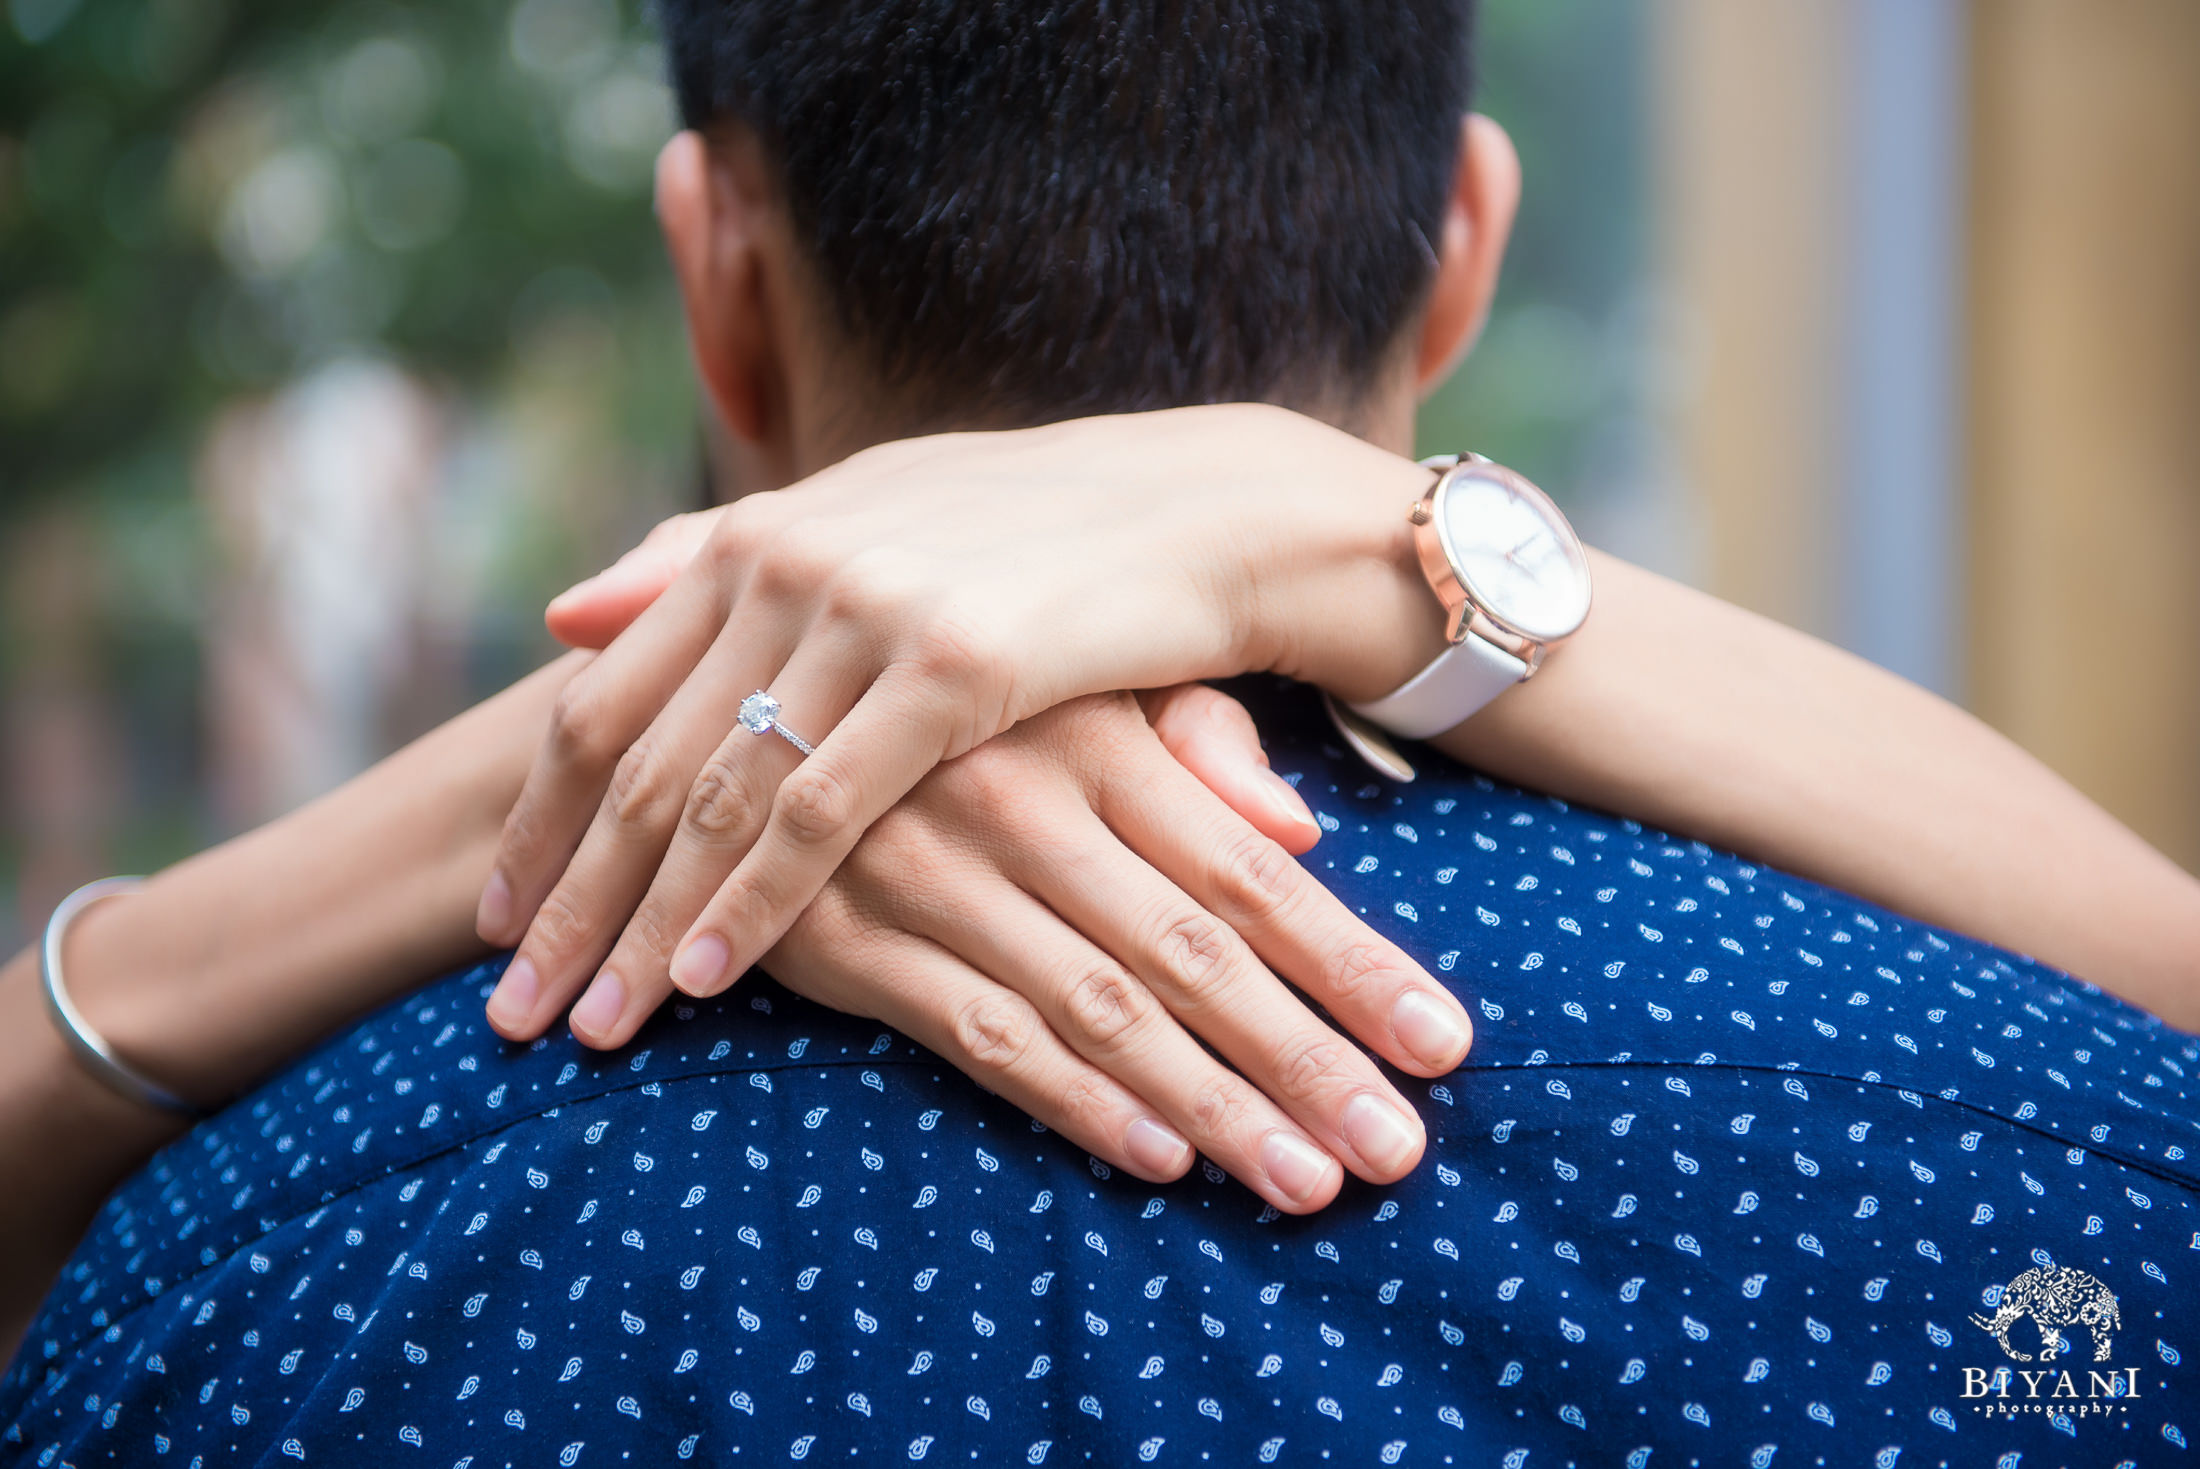 bride's hands wrapped around groom's shoulders during engagement photo shoot in Houston